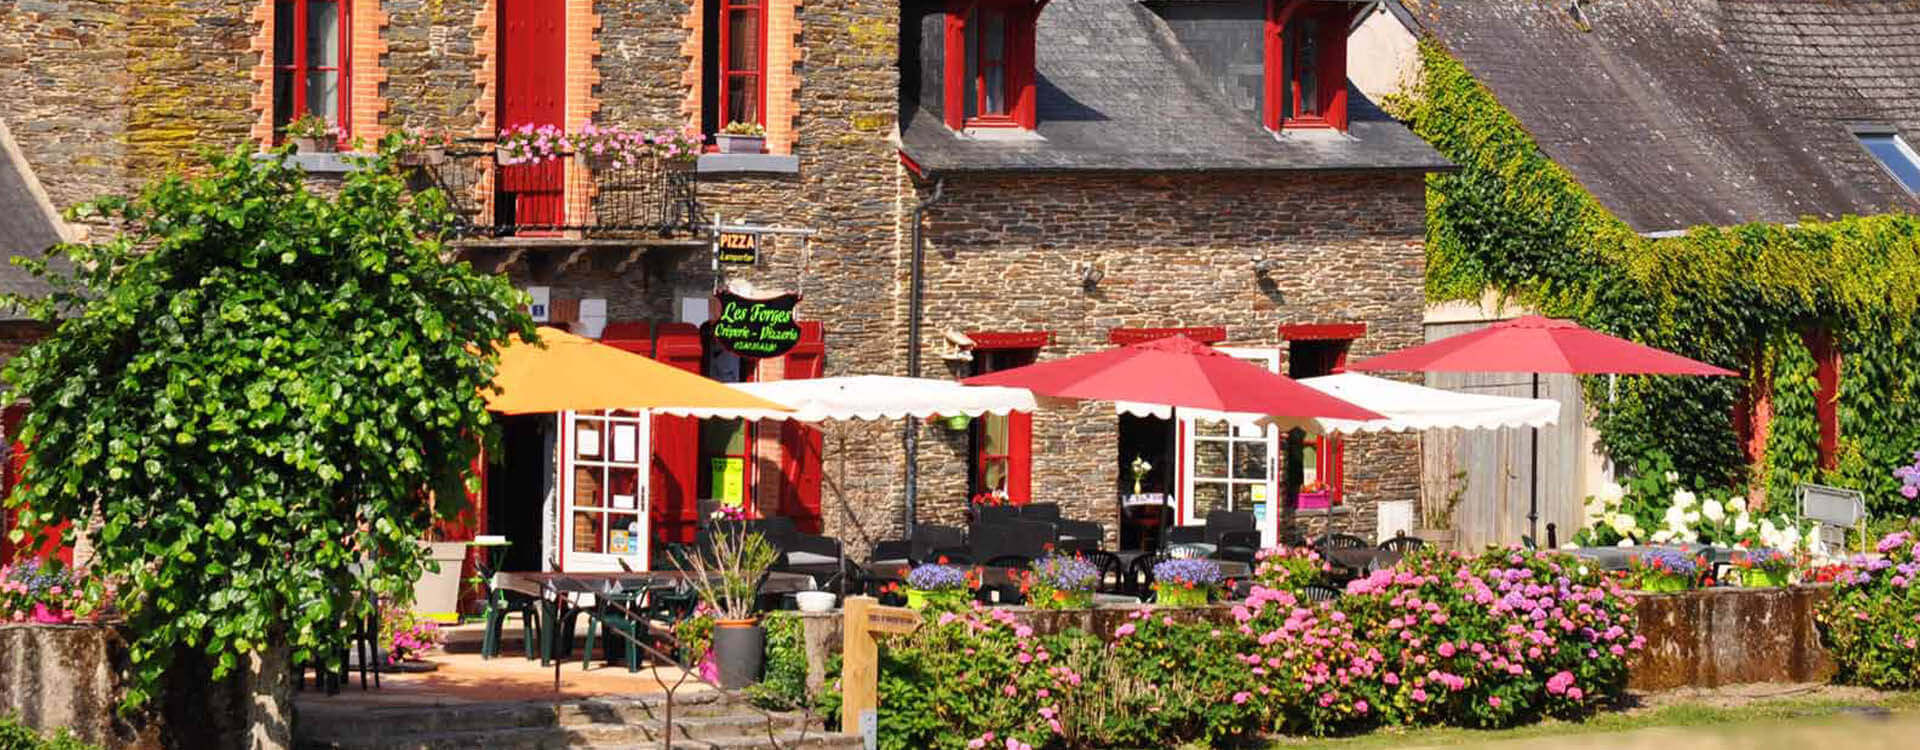 Restaurant Les Forges